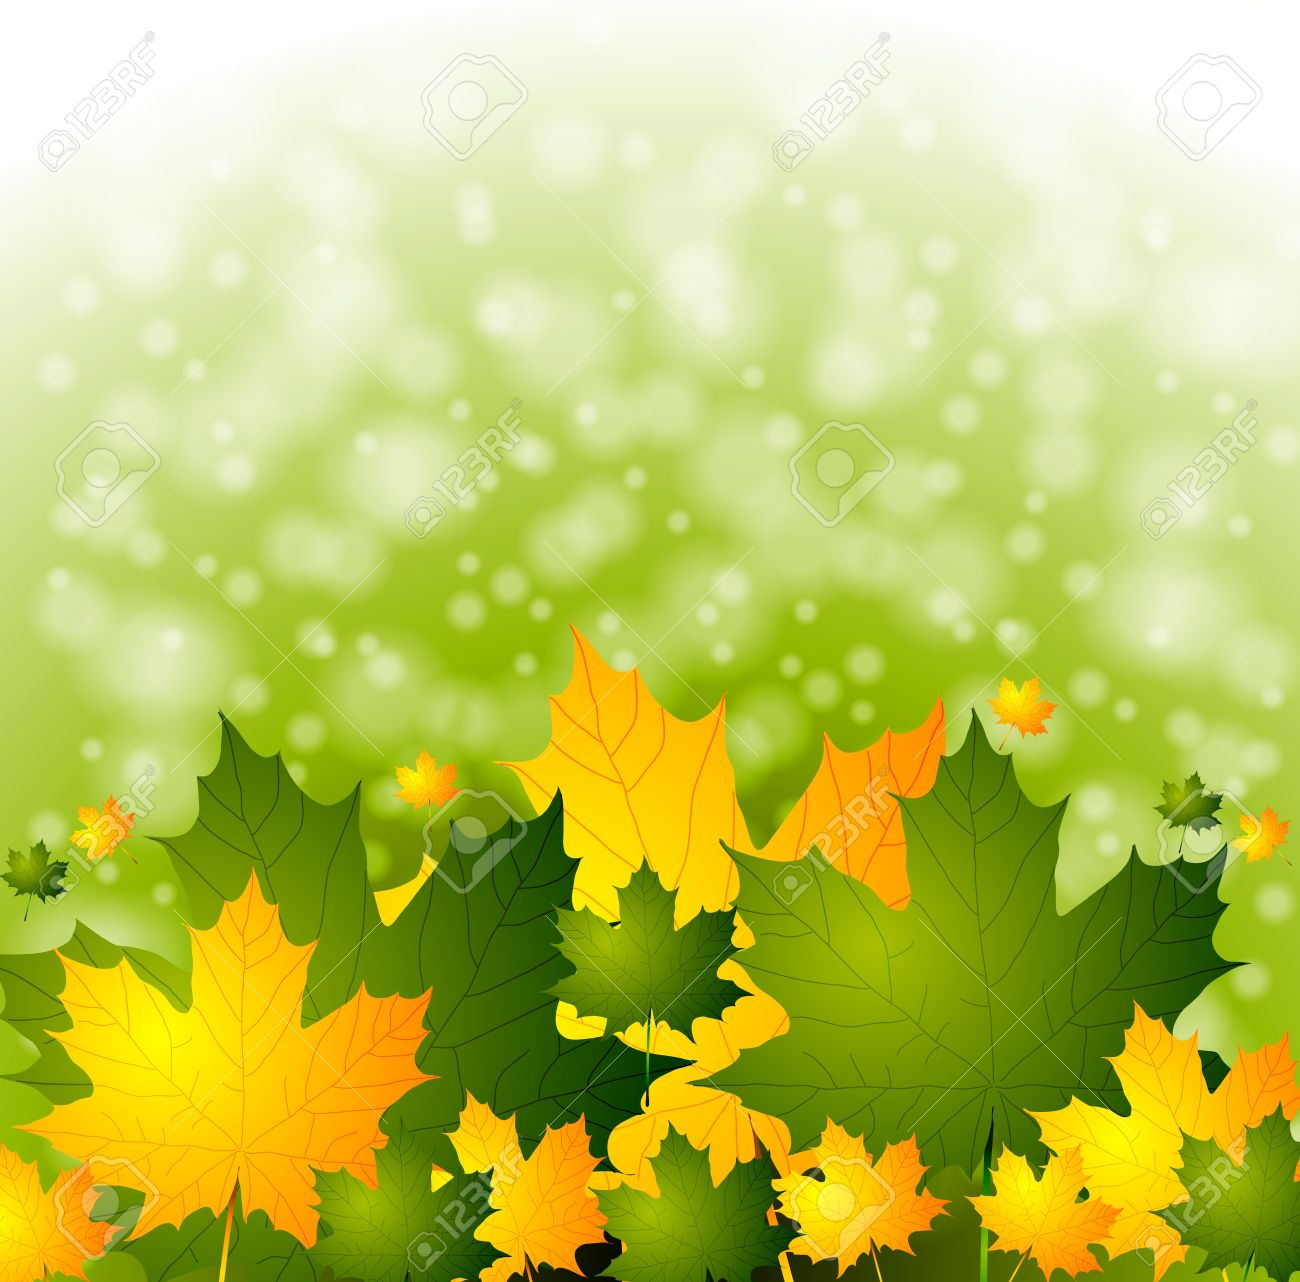 Autumn background with green and yellow leaves Stock Vector - 14827145